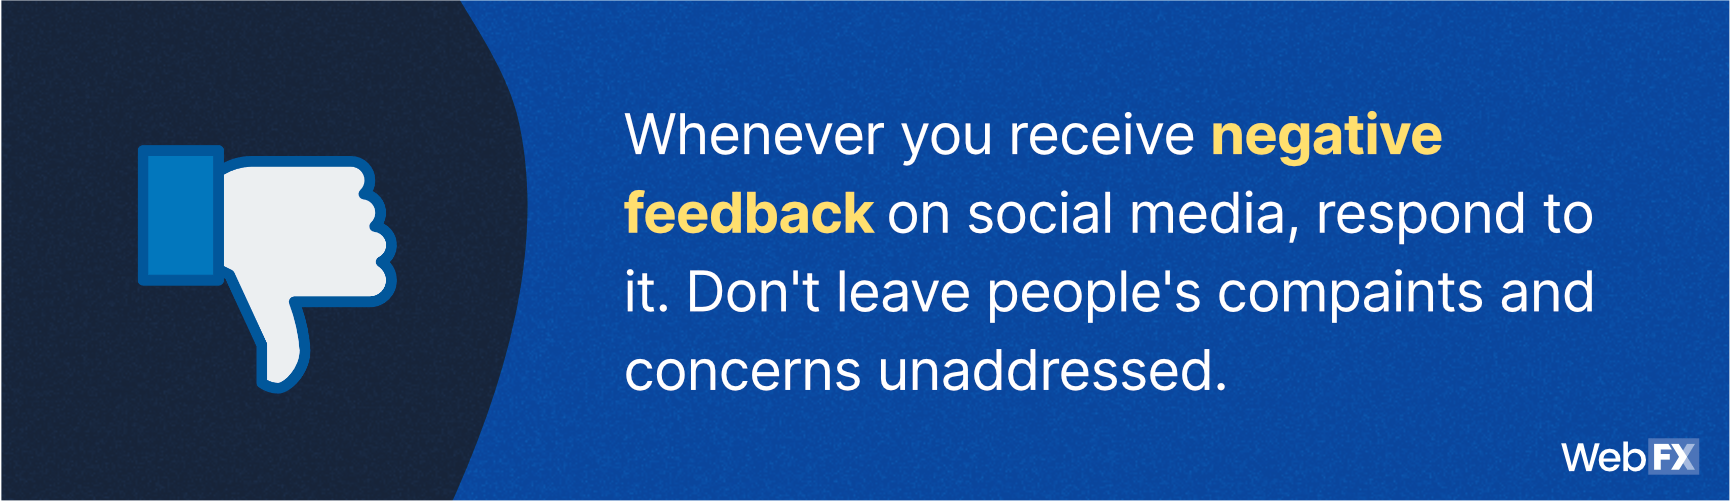 If you receive negative feedback on social media, respond immediately